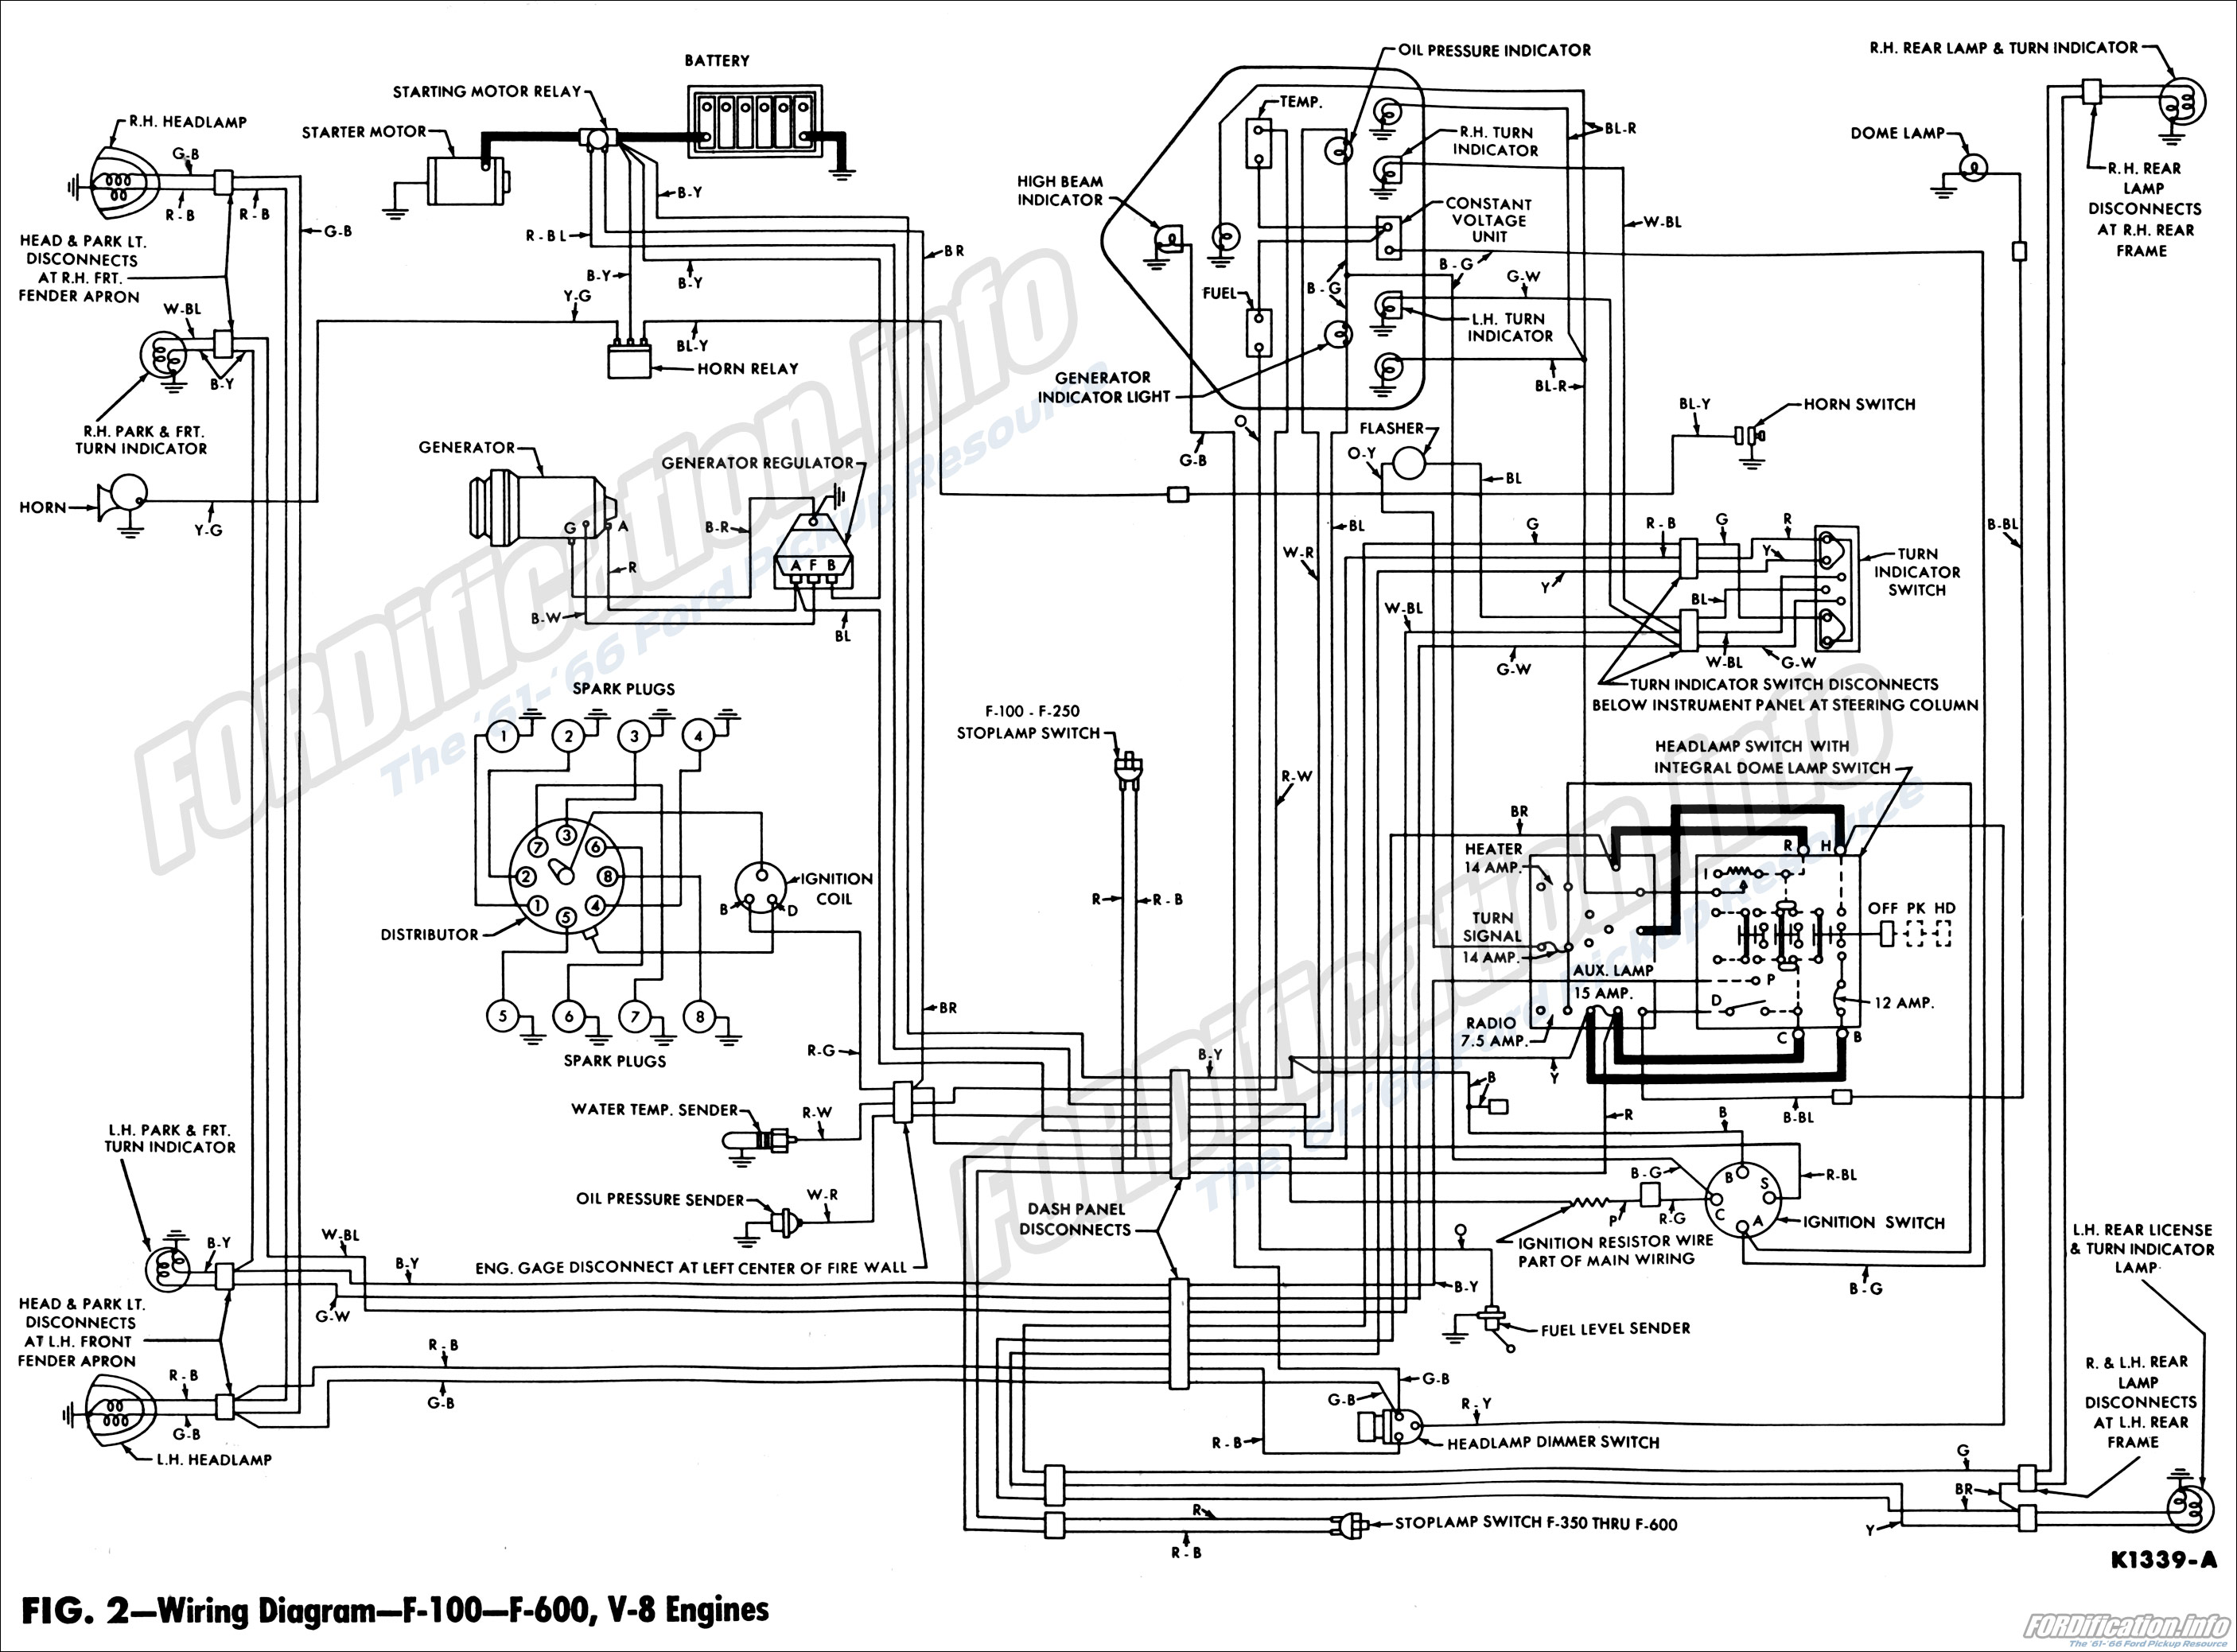 1962 Ford Truck Wiring Diagrams - FORDification.info - The '61-'66 Ford  Pickup ResourceFORDification.info